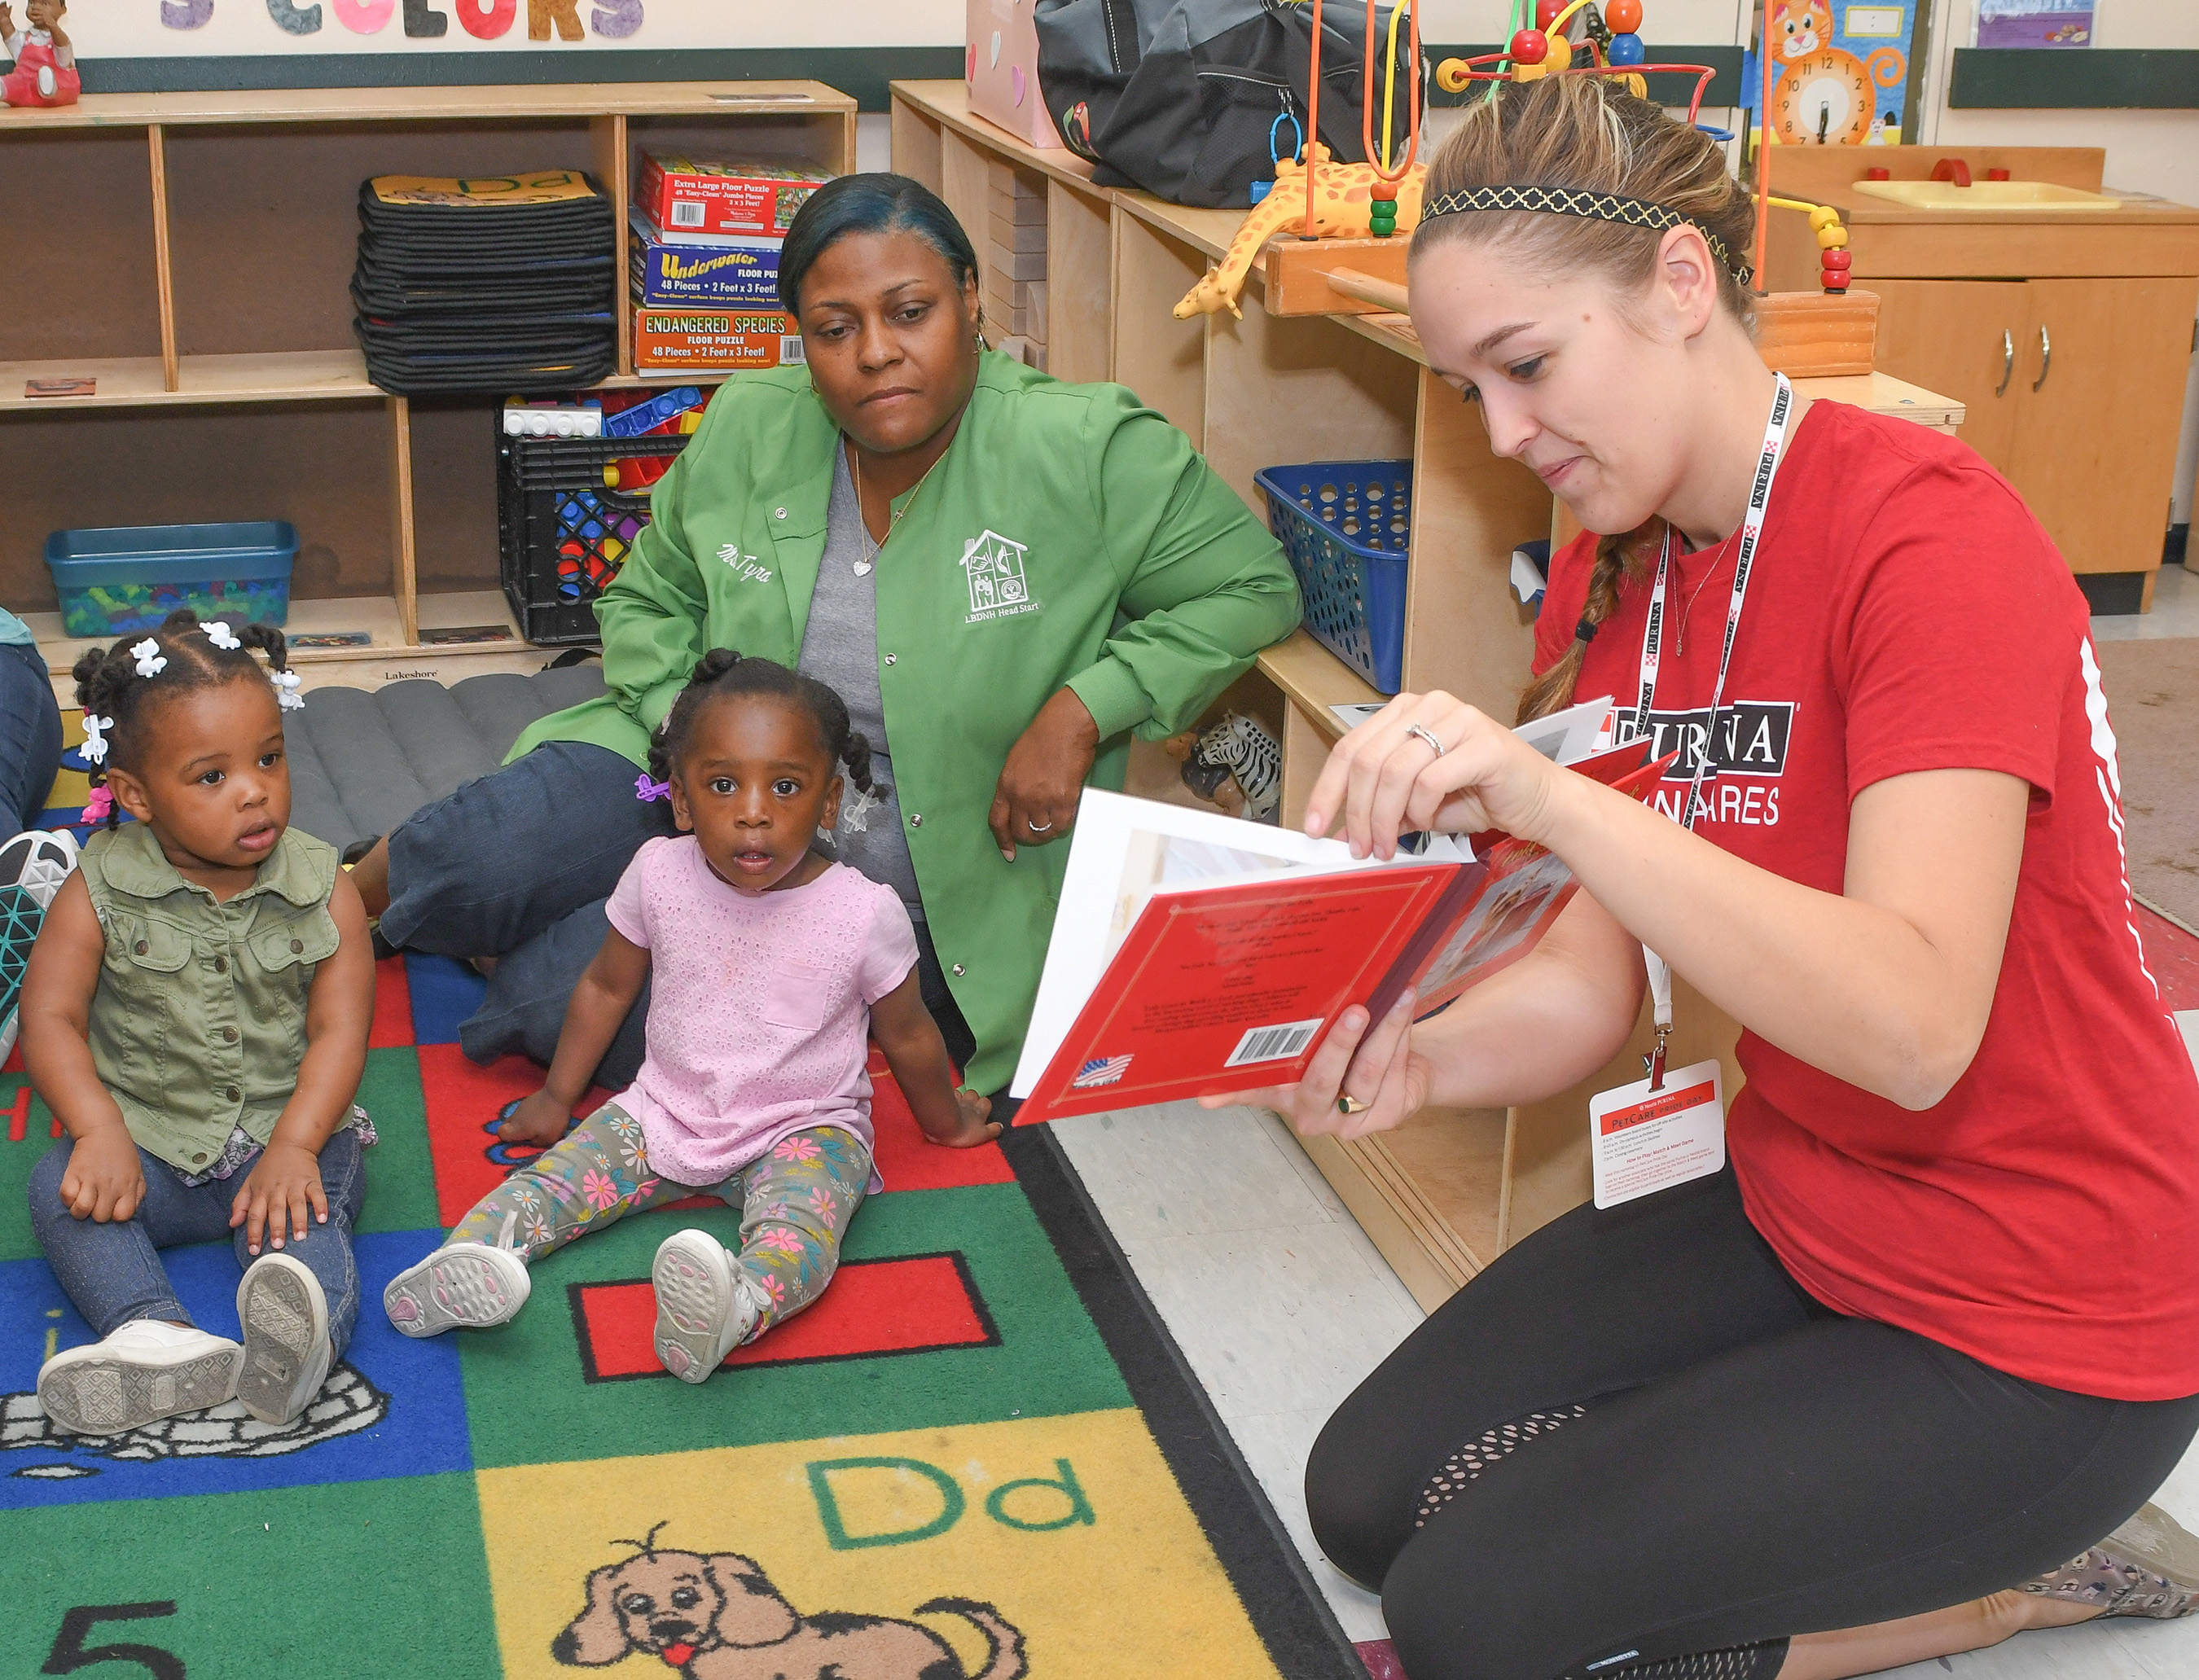 At Lessie Bates Davis Neighborhood House in East St. Louis, Illinois, employees assembled humane education materials and read books about responsible pet care and shelter pets.